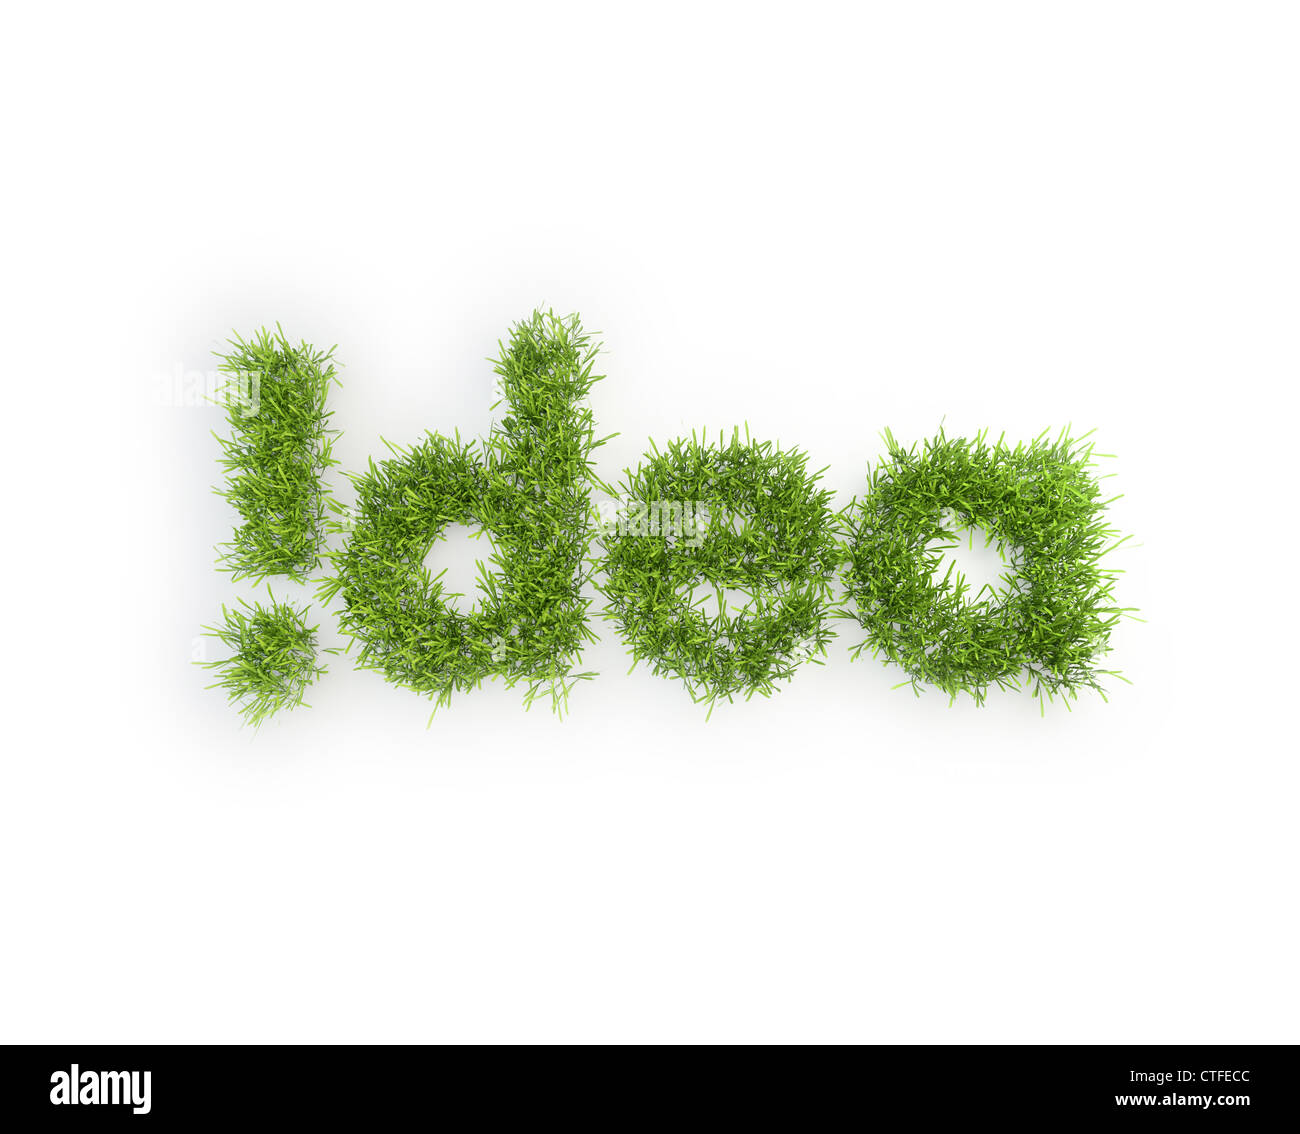 Idea grass patch - creativity concept - Stock Image